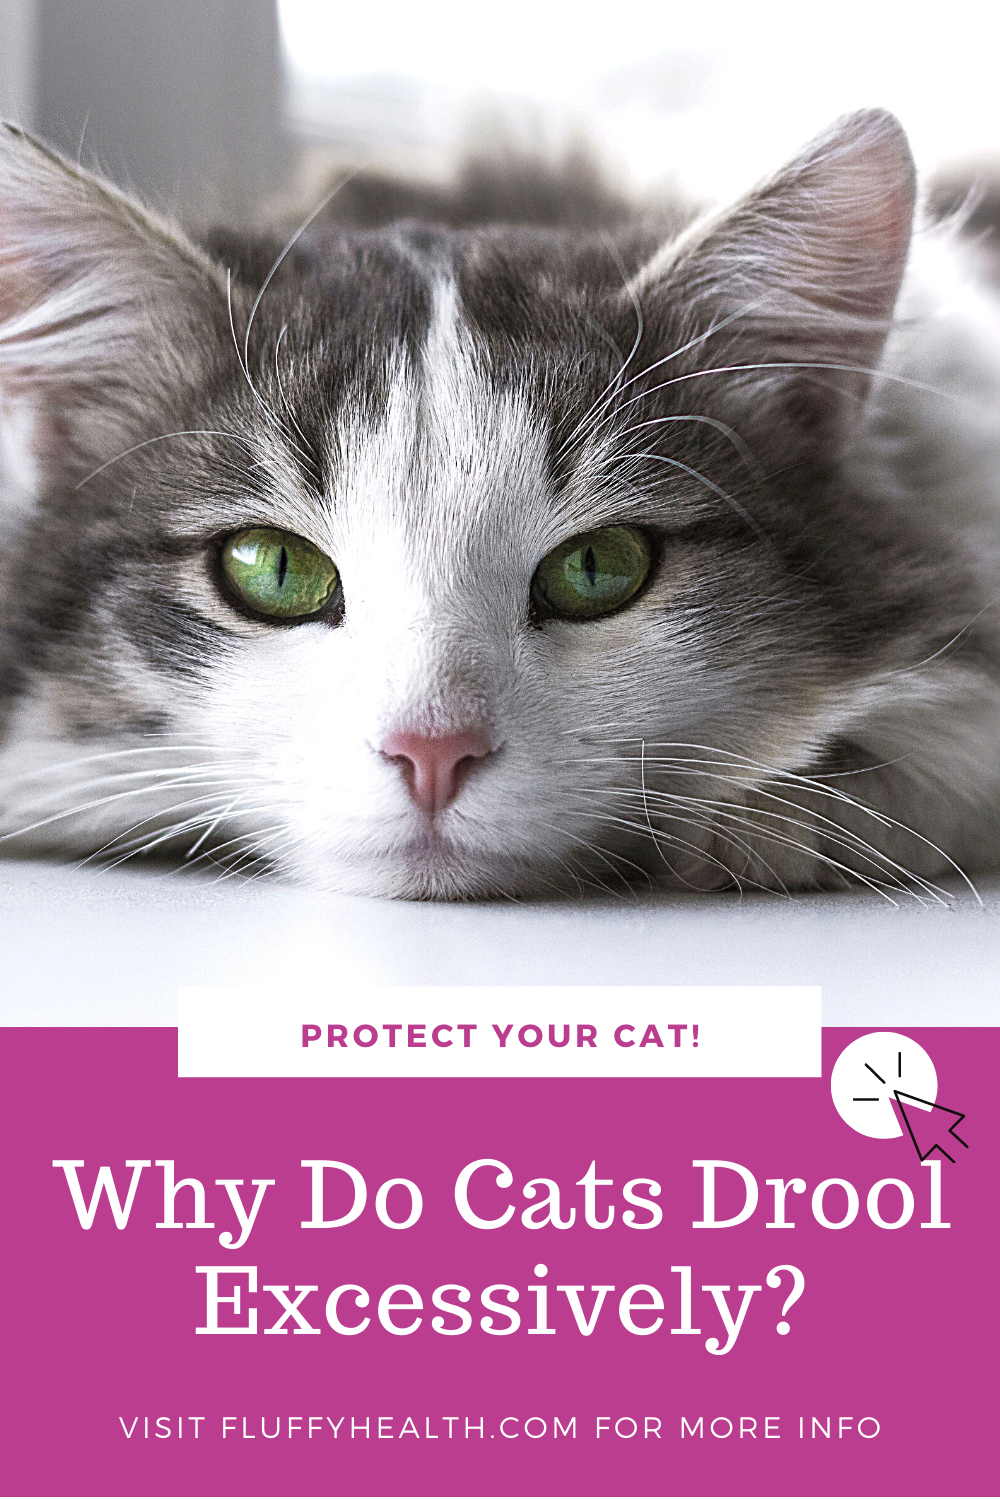 Why Do Cats Drool Excessively Fluffyhealth In 2020 Cat Drooling Cat Health Problems Cat Diseases